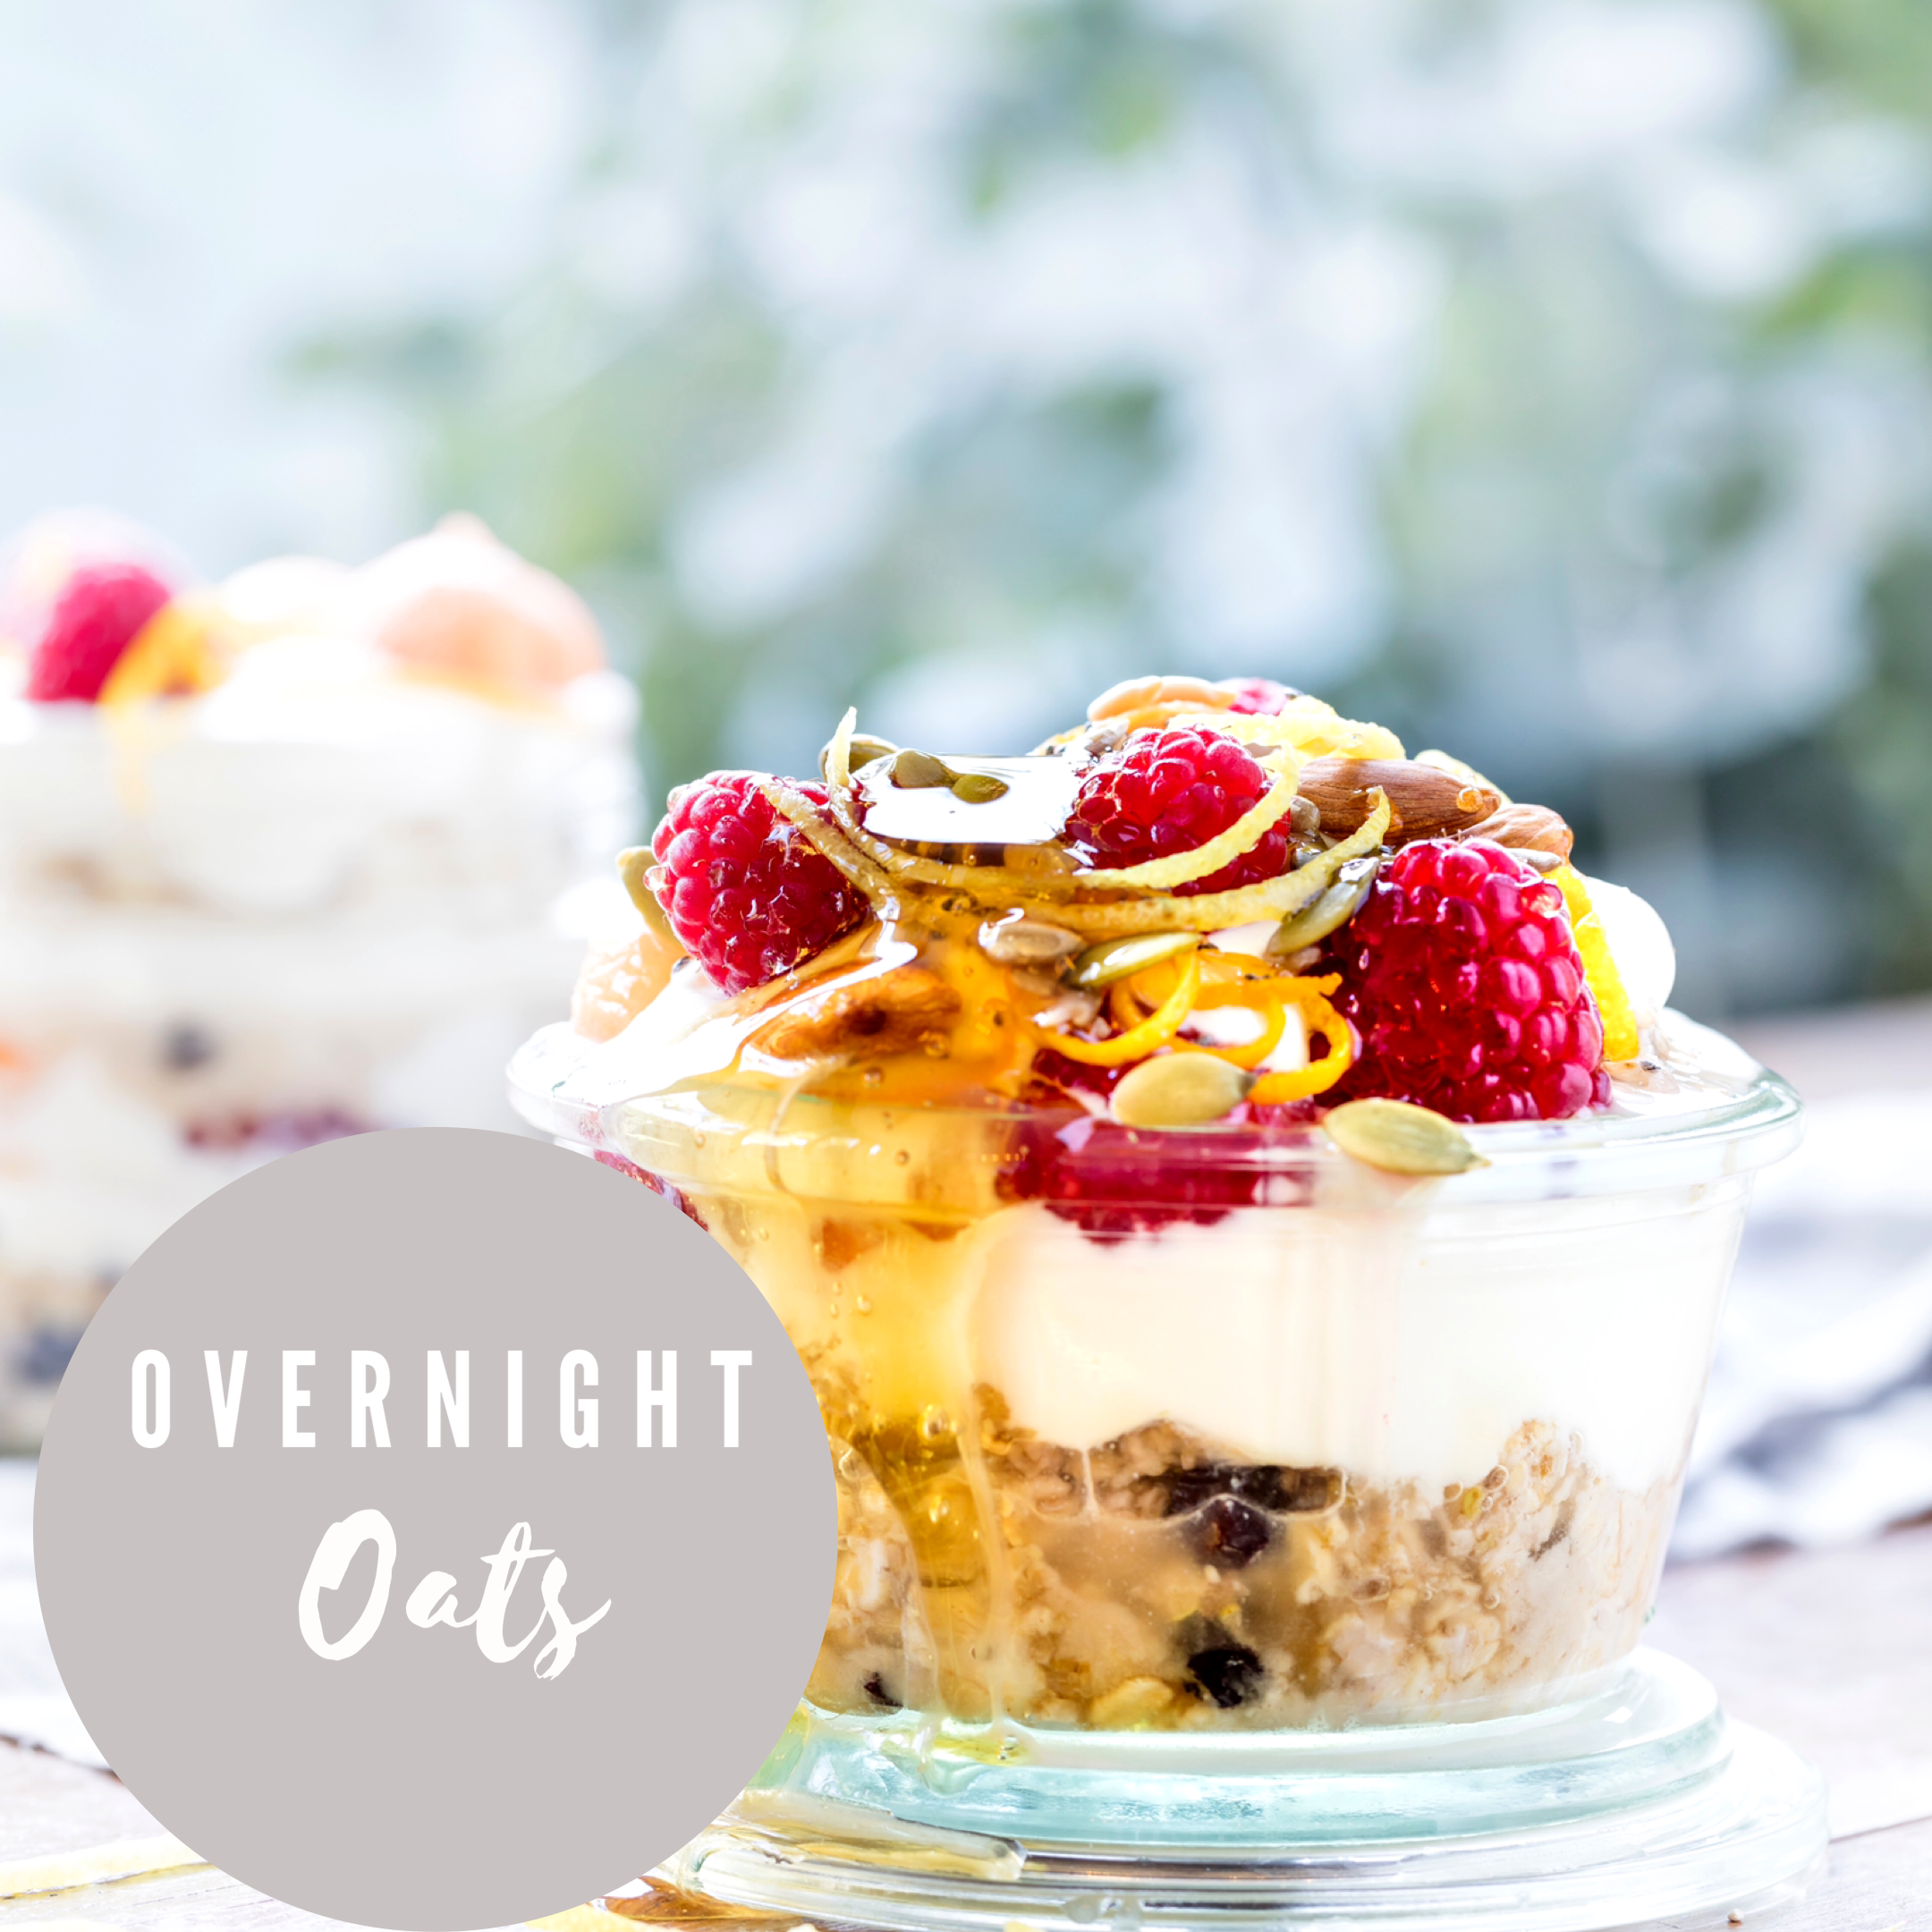 Overnight Oats – the perfect spring / summer breakfast!